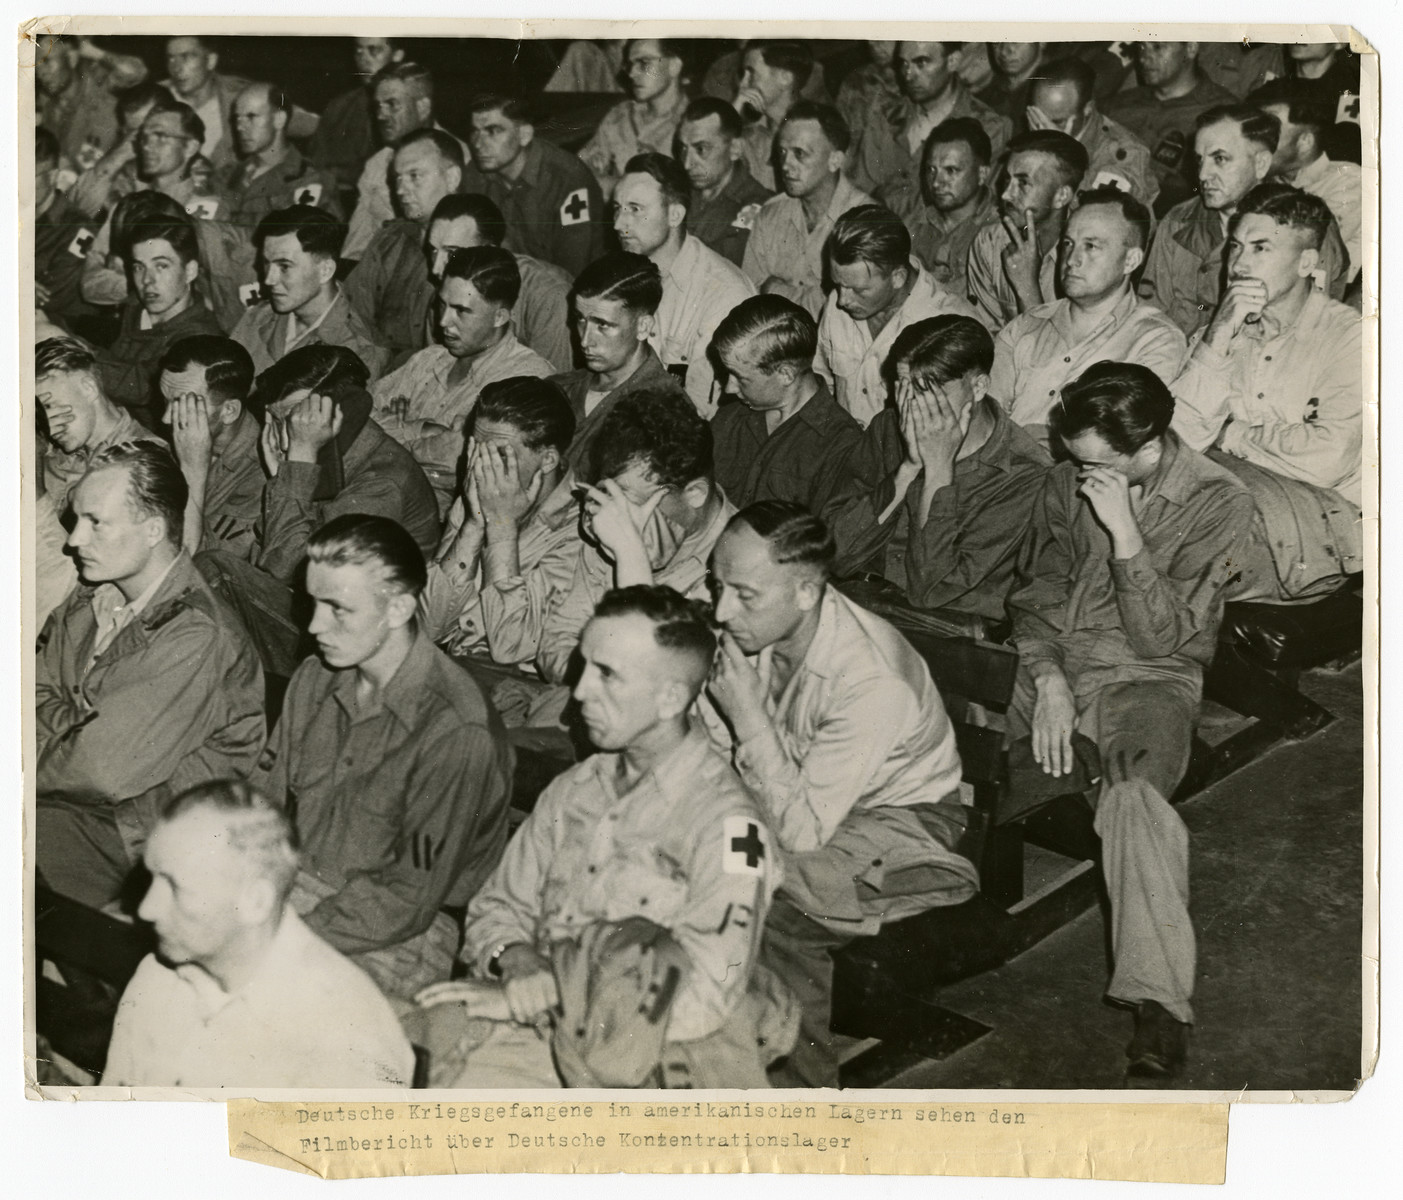 German prisoners of war are forced to watch an atrocity  film on German concentration camps.  Original caption reads:  Deutsche Kriegsgefangene in amerikanischen Lagern sehen den Filmbericht über Deutsche Konzentrationslager   [German prisoners of war held in an American camp watch a film about German concentration camps.]